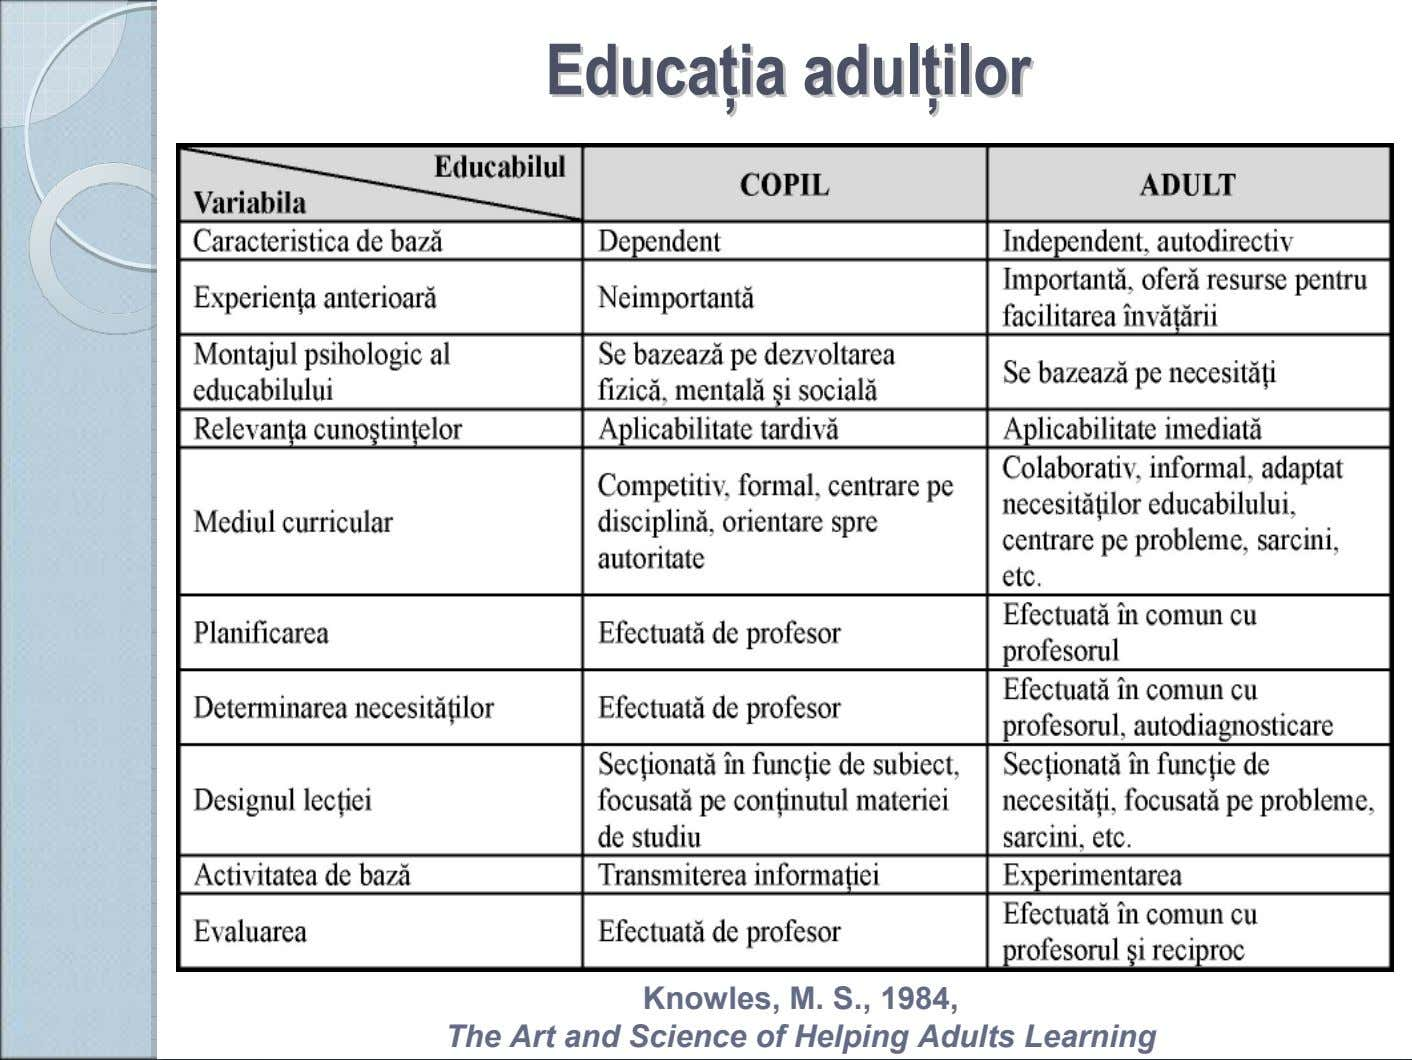 EducaEducaŃŃiaia aduladulŃŃilorilor Knowles, M. S., 1984, The Art and Science of Helping Adults Learning